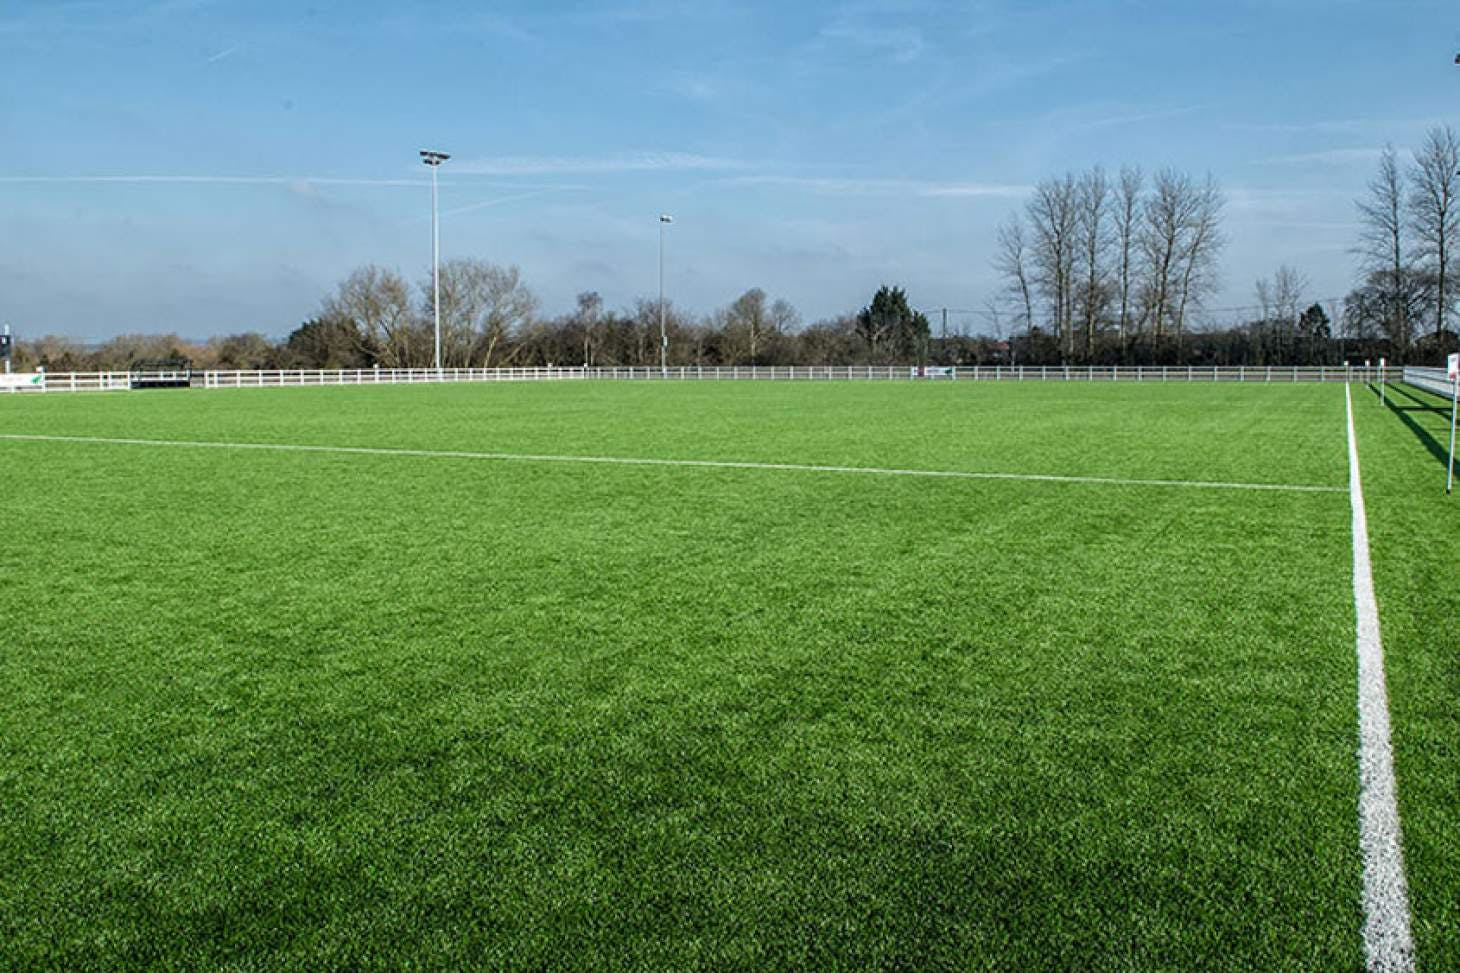 PlayFootball Bedford 5 a side | 3G Astroturf football pitch